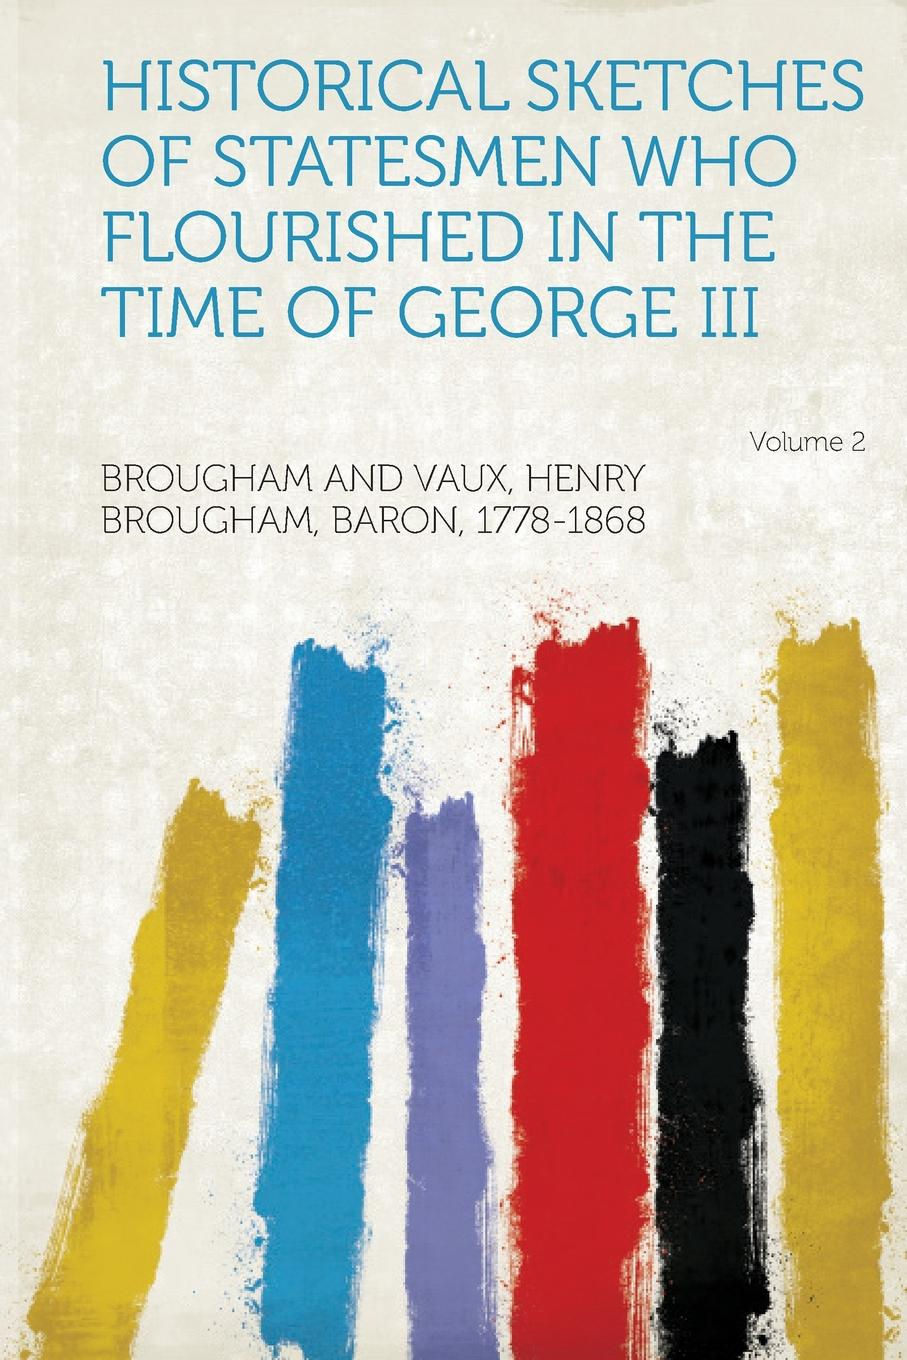 Brougham and Vaux Henry Brou 1778-1868 Historical Sketches of Statesmen Who Flourished in the Time of George III Volume 2